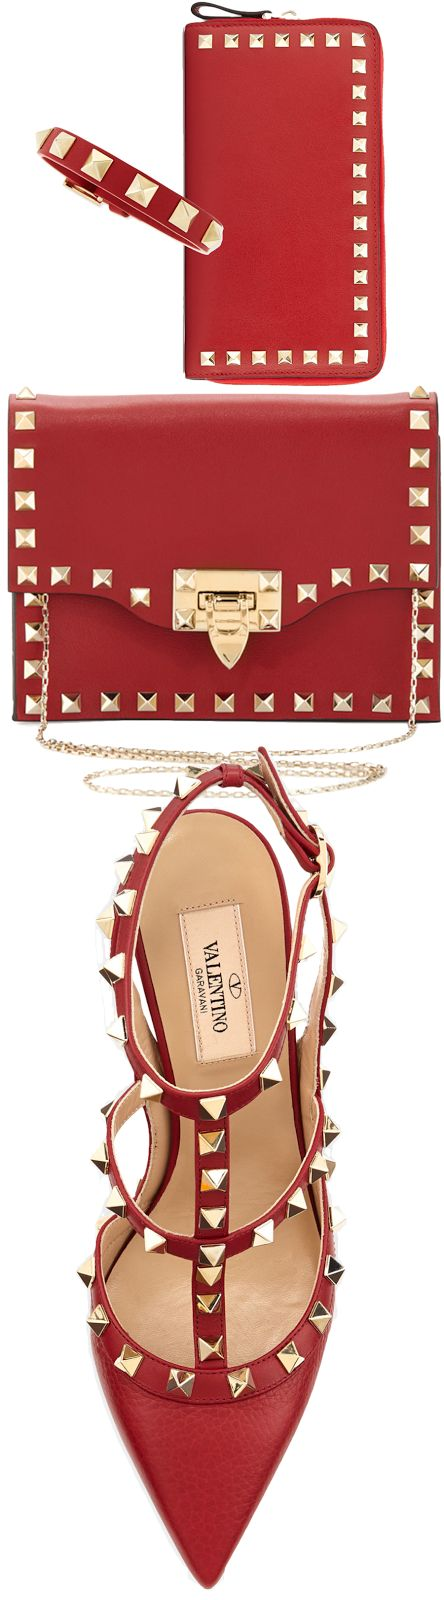 Valentino Rockstud Leather Slingback Sandal, Rockstud Pouch Crossbody Bag, Rockstud Continental Zip Wallet, and Rockstud Leather Buckled Bracelet